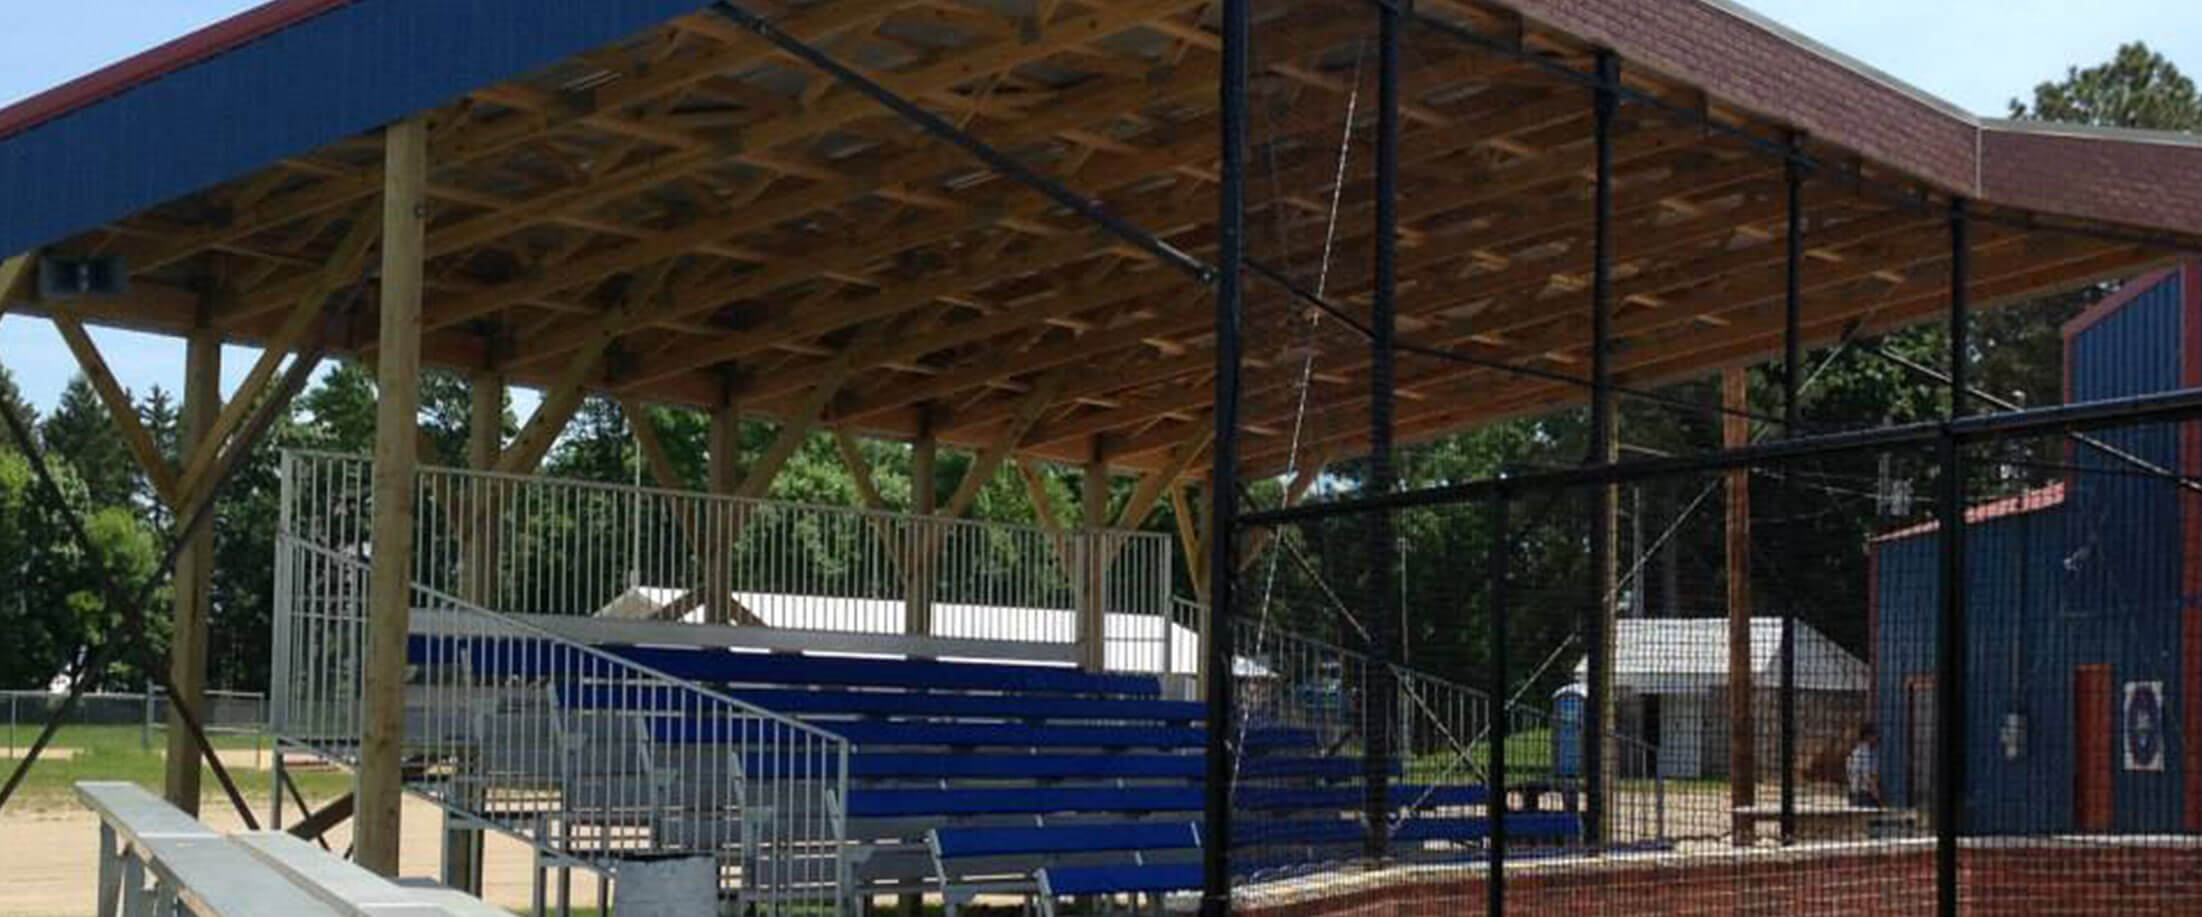 Baseball stands and overhead awning built using materials supplied by Lifestyle Lumber